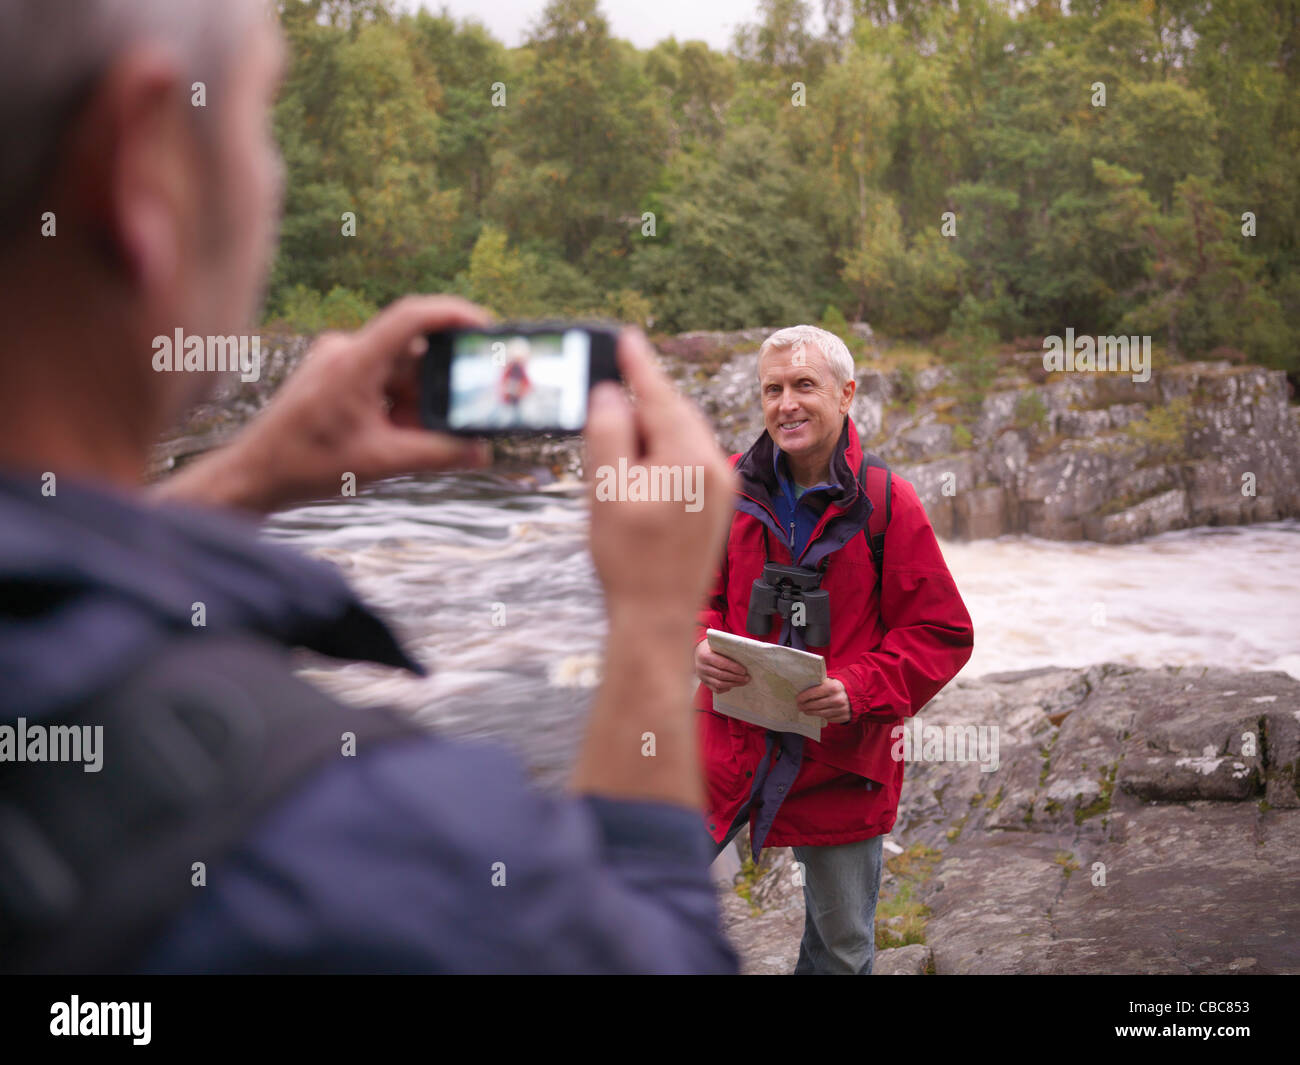 Hiker taking picture of friend by river - Stock Image